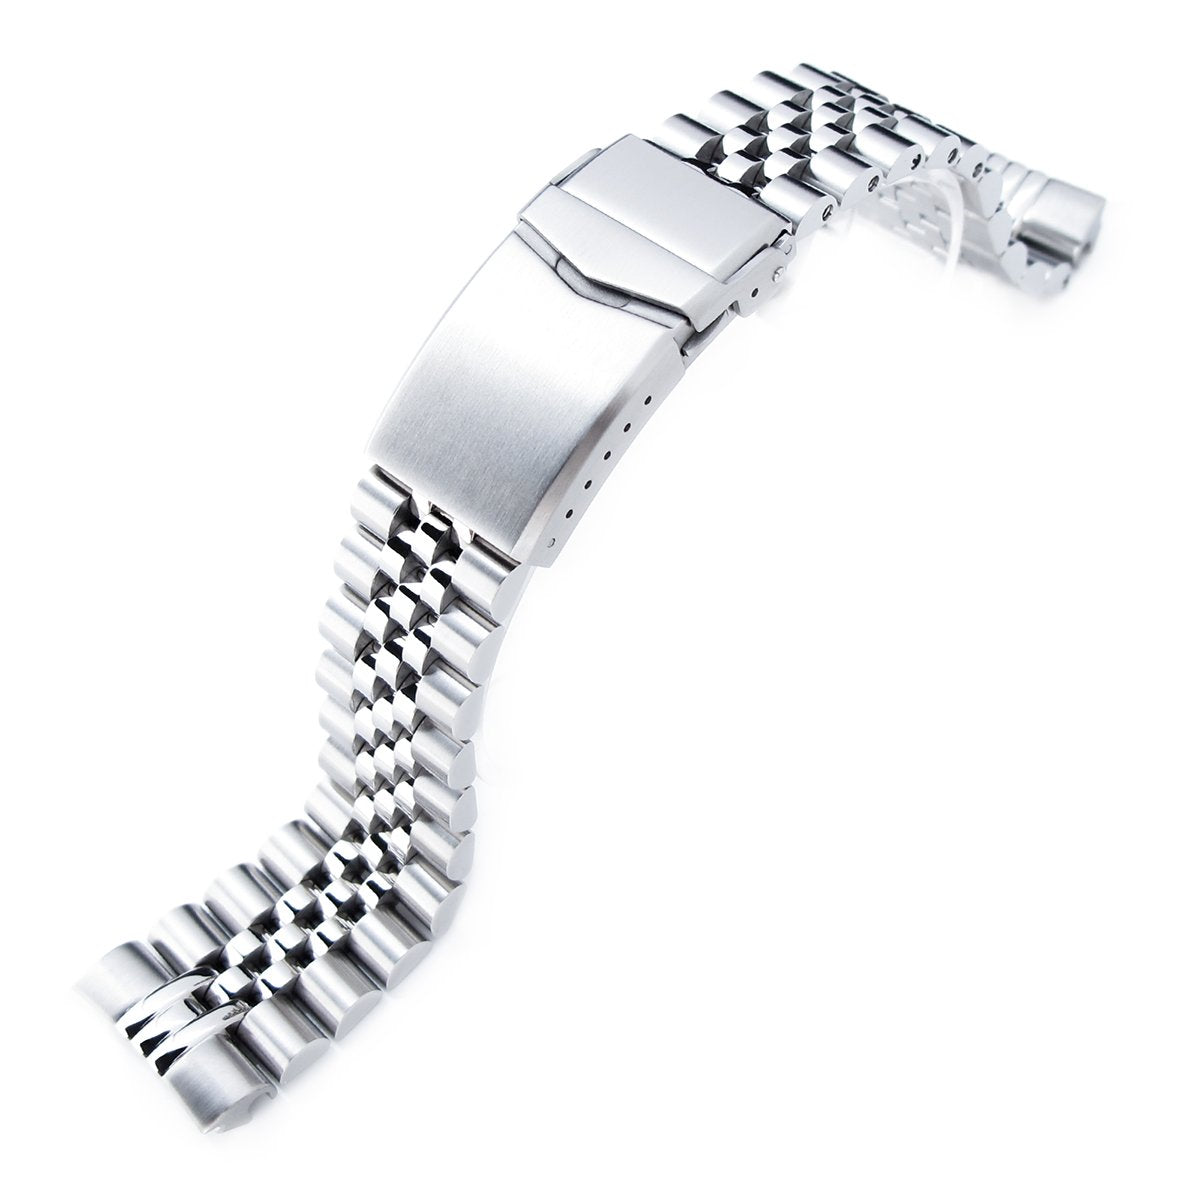 22mm Super-J Louis 316L Stainless Steel Watch Bracelet for Seiko New Turtles SRP777 & PADI SRPA21 V-Clasp Brushed Strapcode Watch Bands